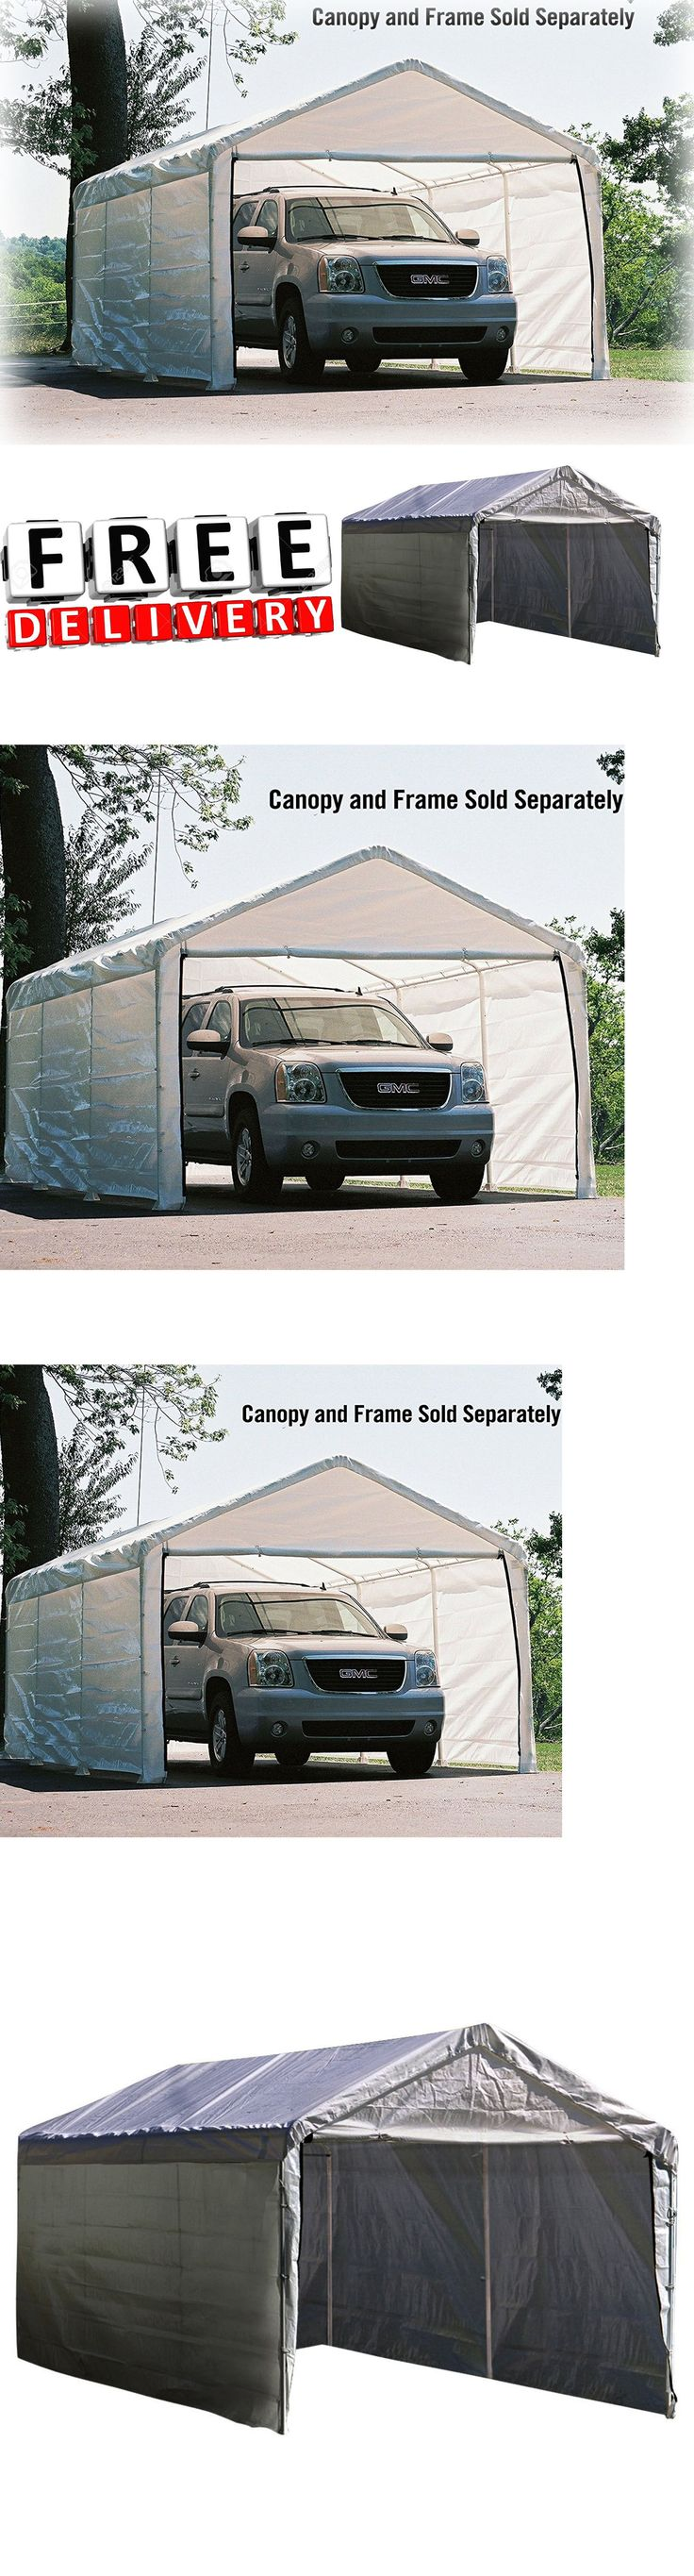 Awnings and Canopies 180992: Canopy Enclosure Kit 12X20 ...